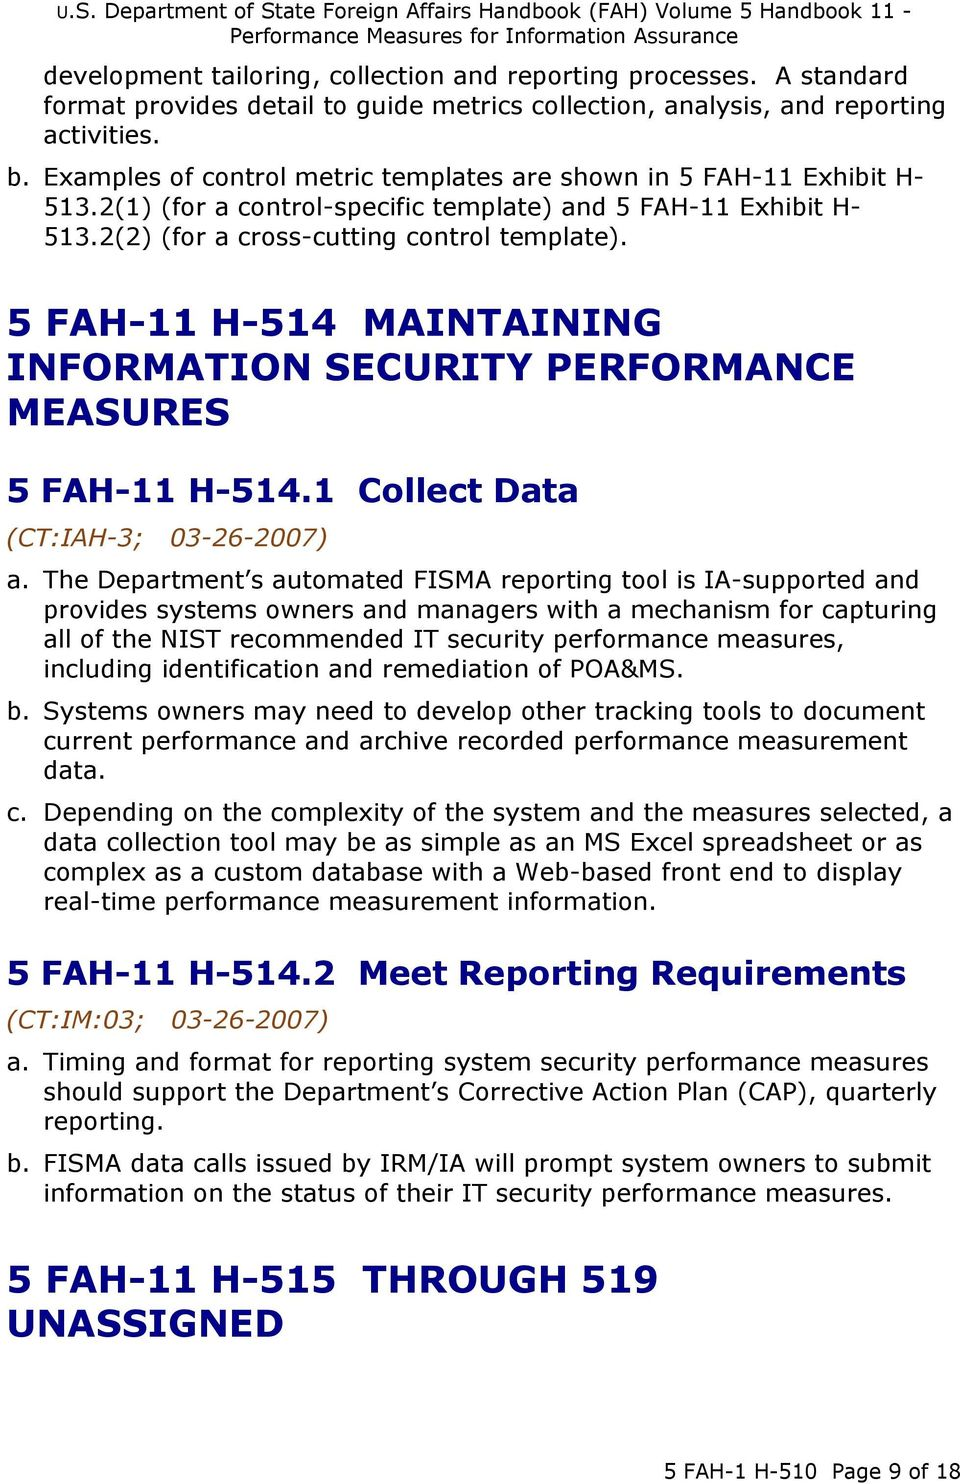 5 FAH-11 H-514 MAINTAINING INFORMATION SECURITY PERFORMANCE MEASURES 5 FAH-11 H-514.1 Collect Data a.